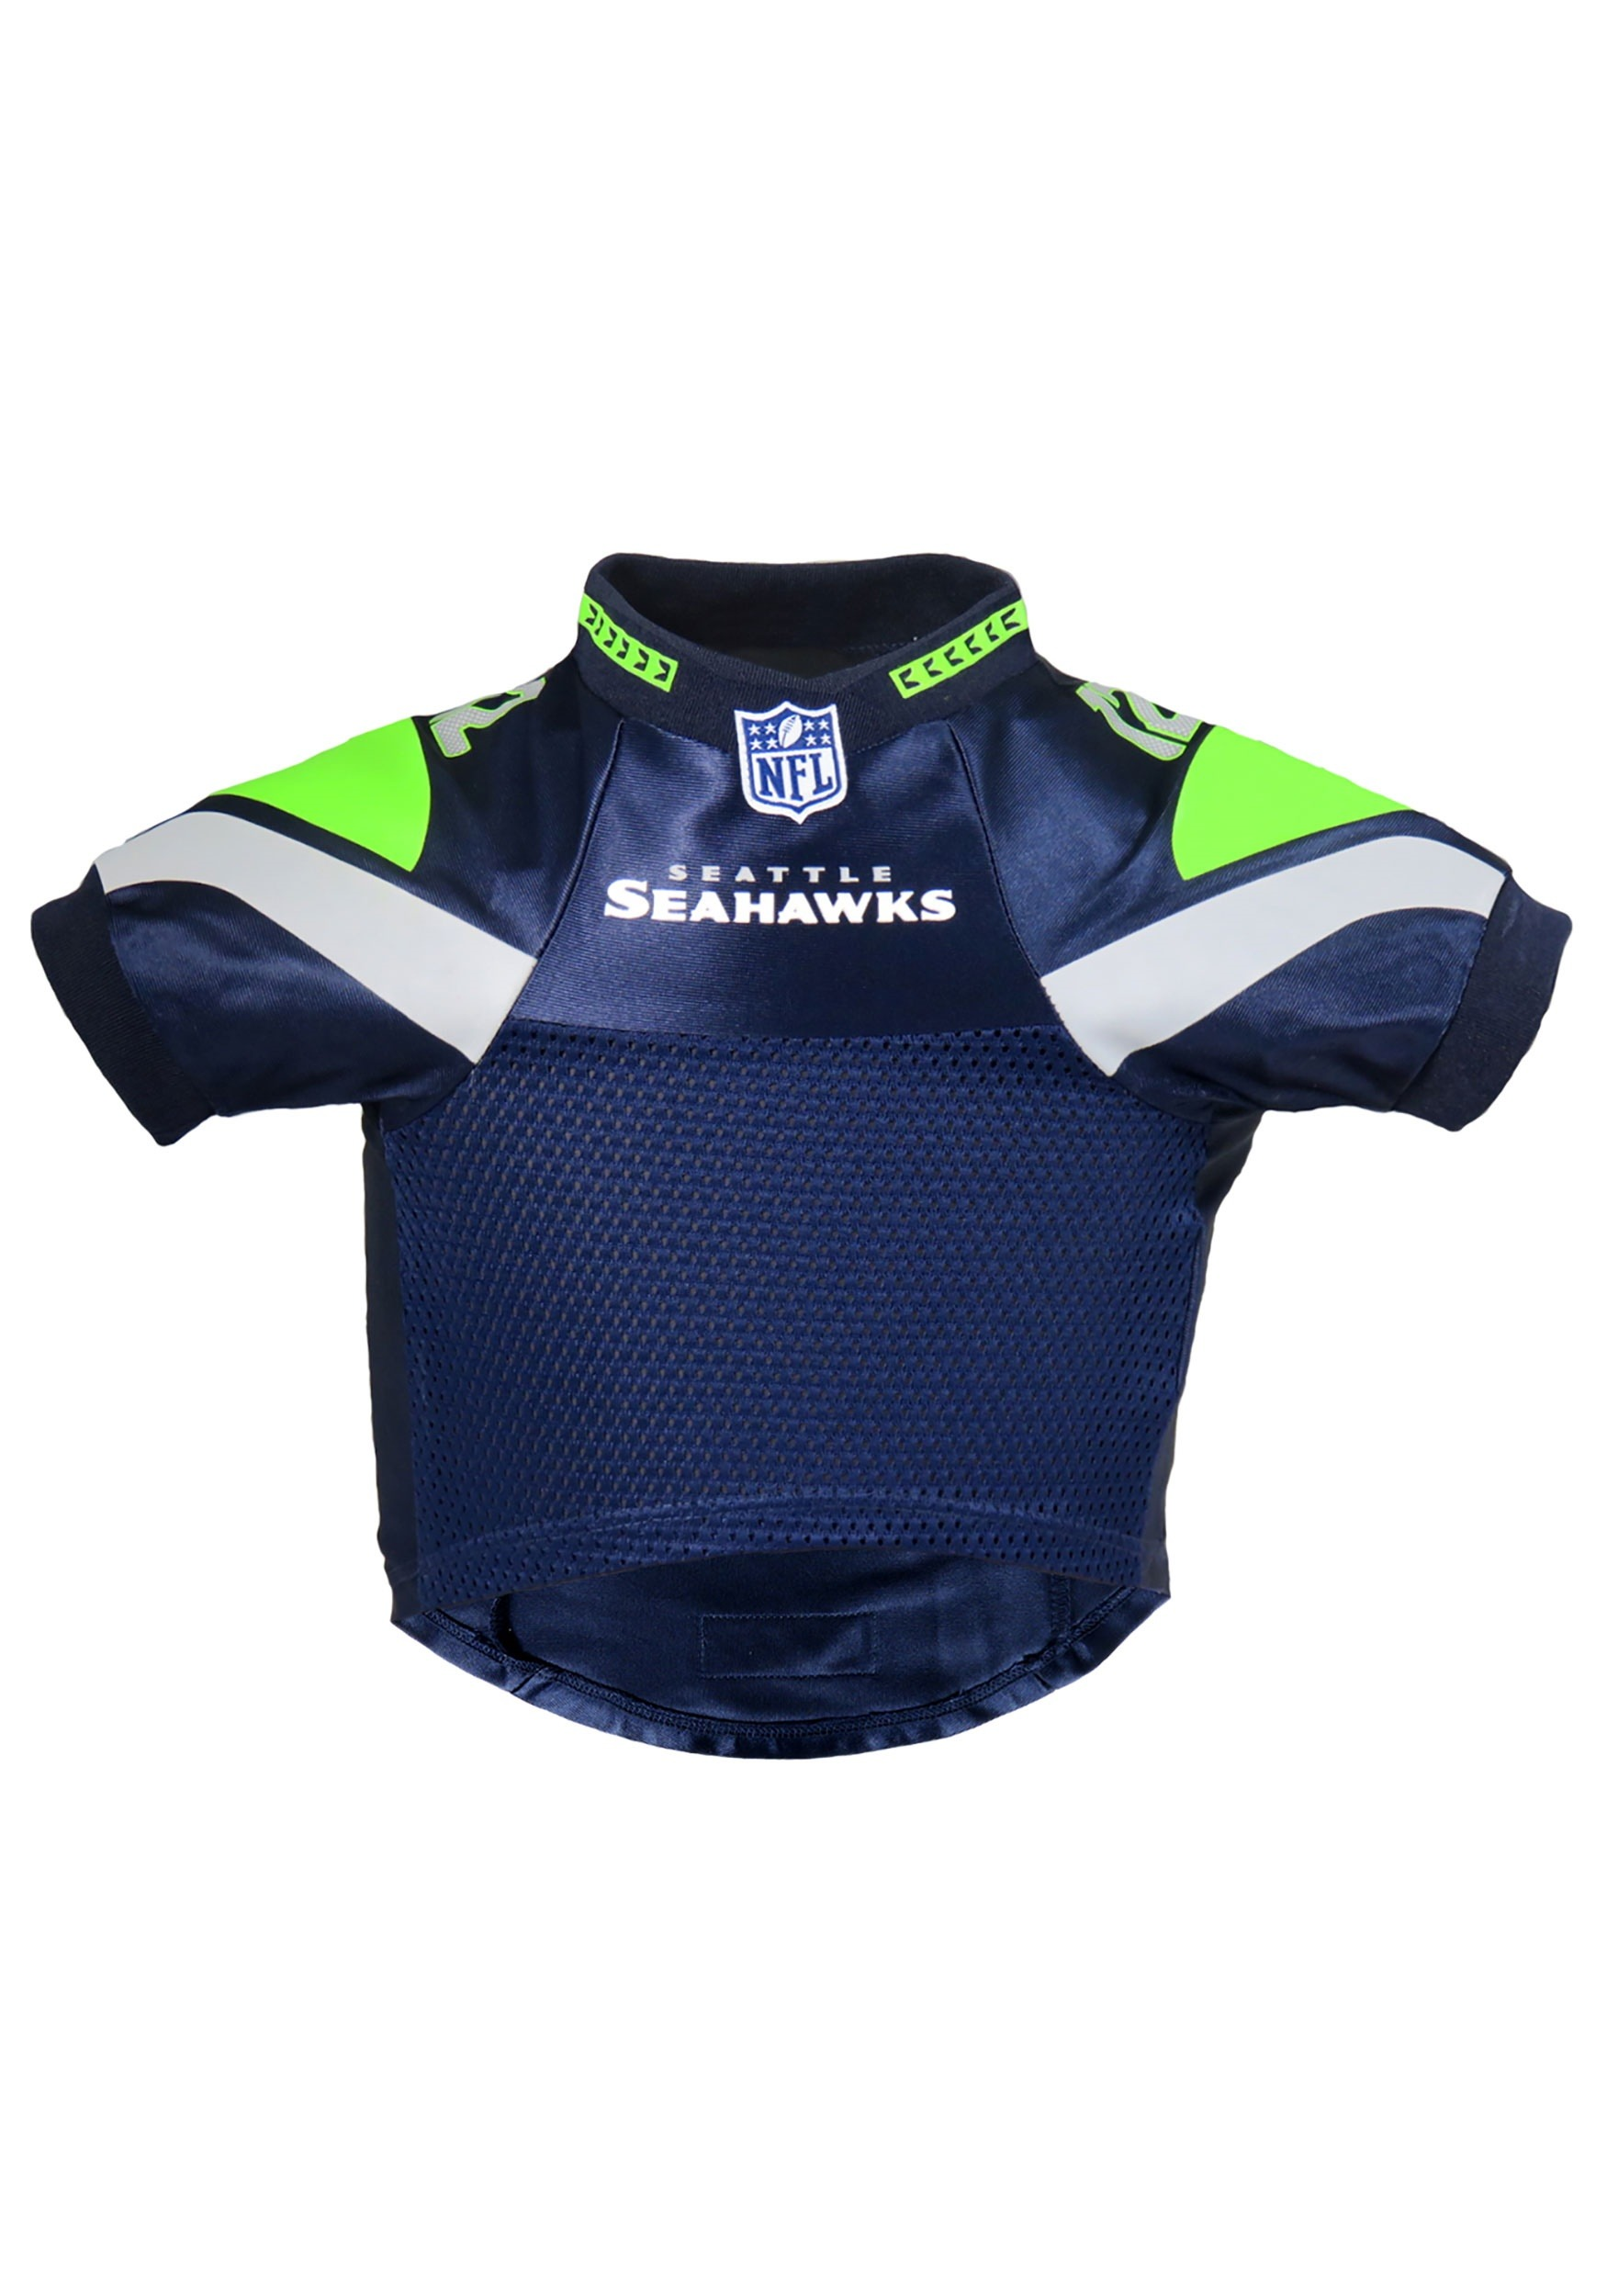 828f1ce0925 ... Seattle Seahawks Pet Premium Jersey